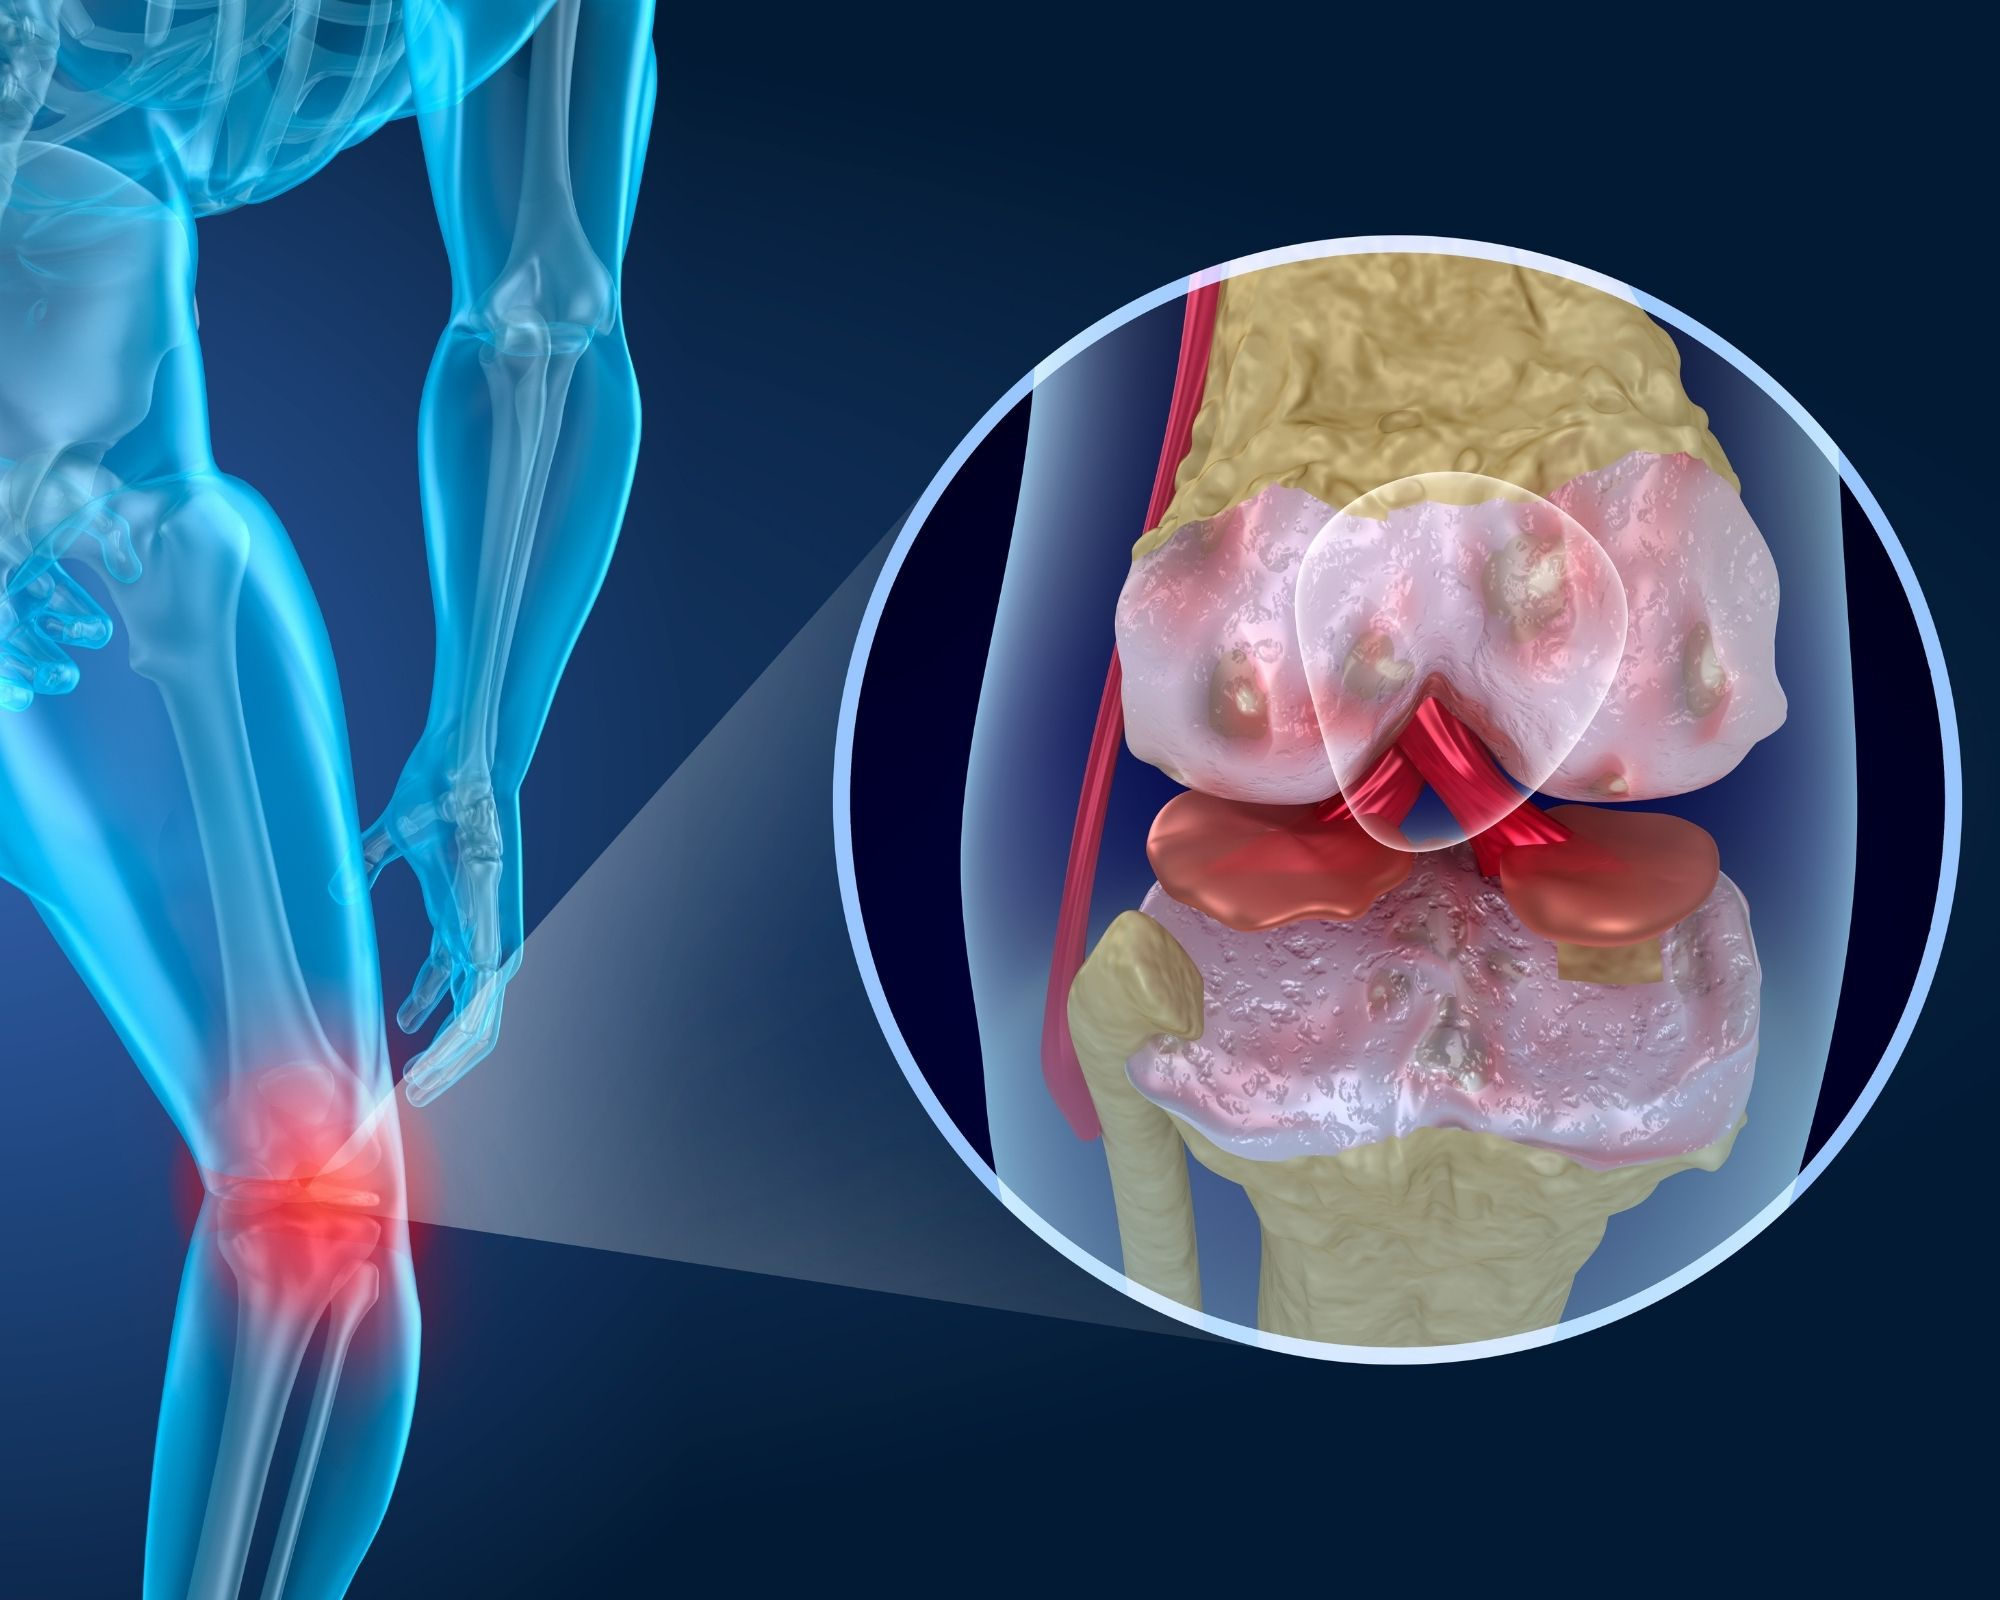 Knee Cartilage - Nutrients are needed to repair this